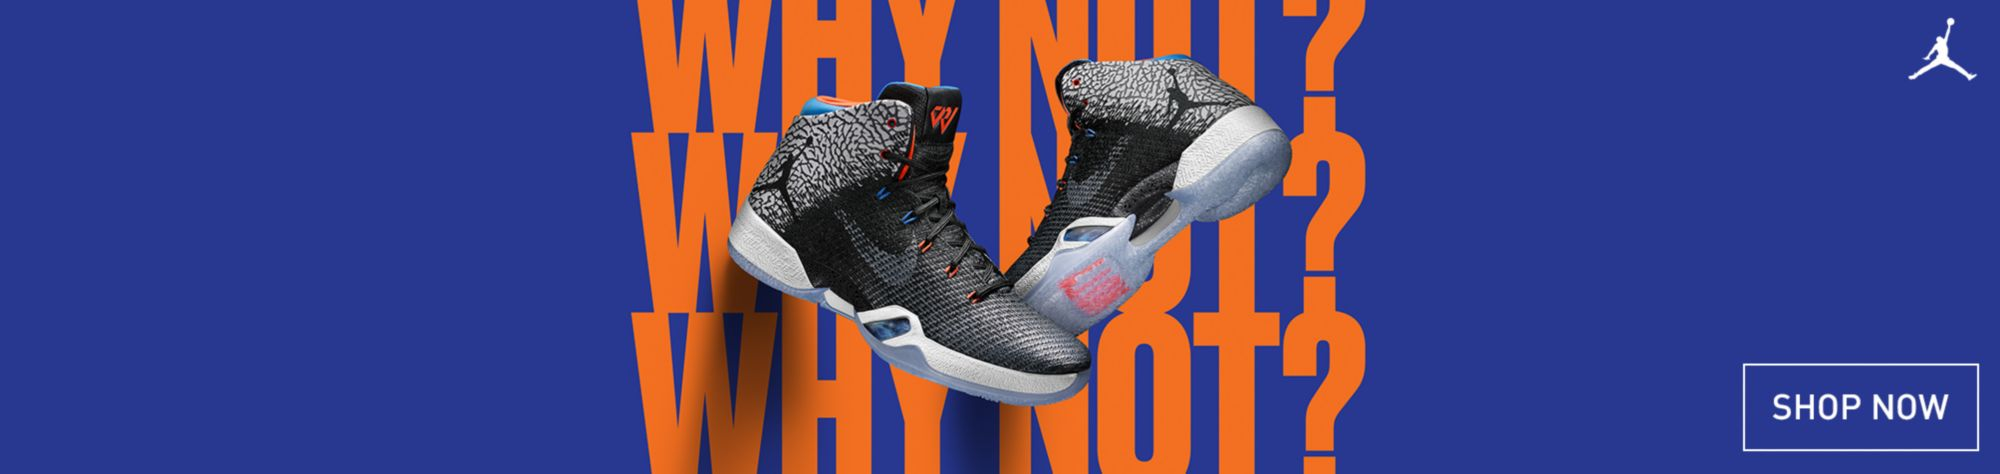 Shop Jordan XXXI Why Not?